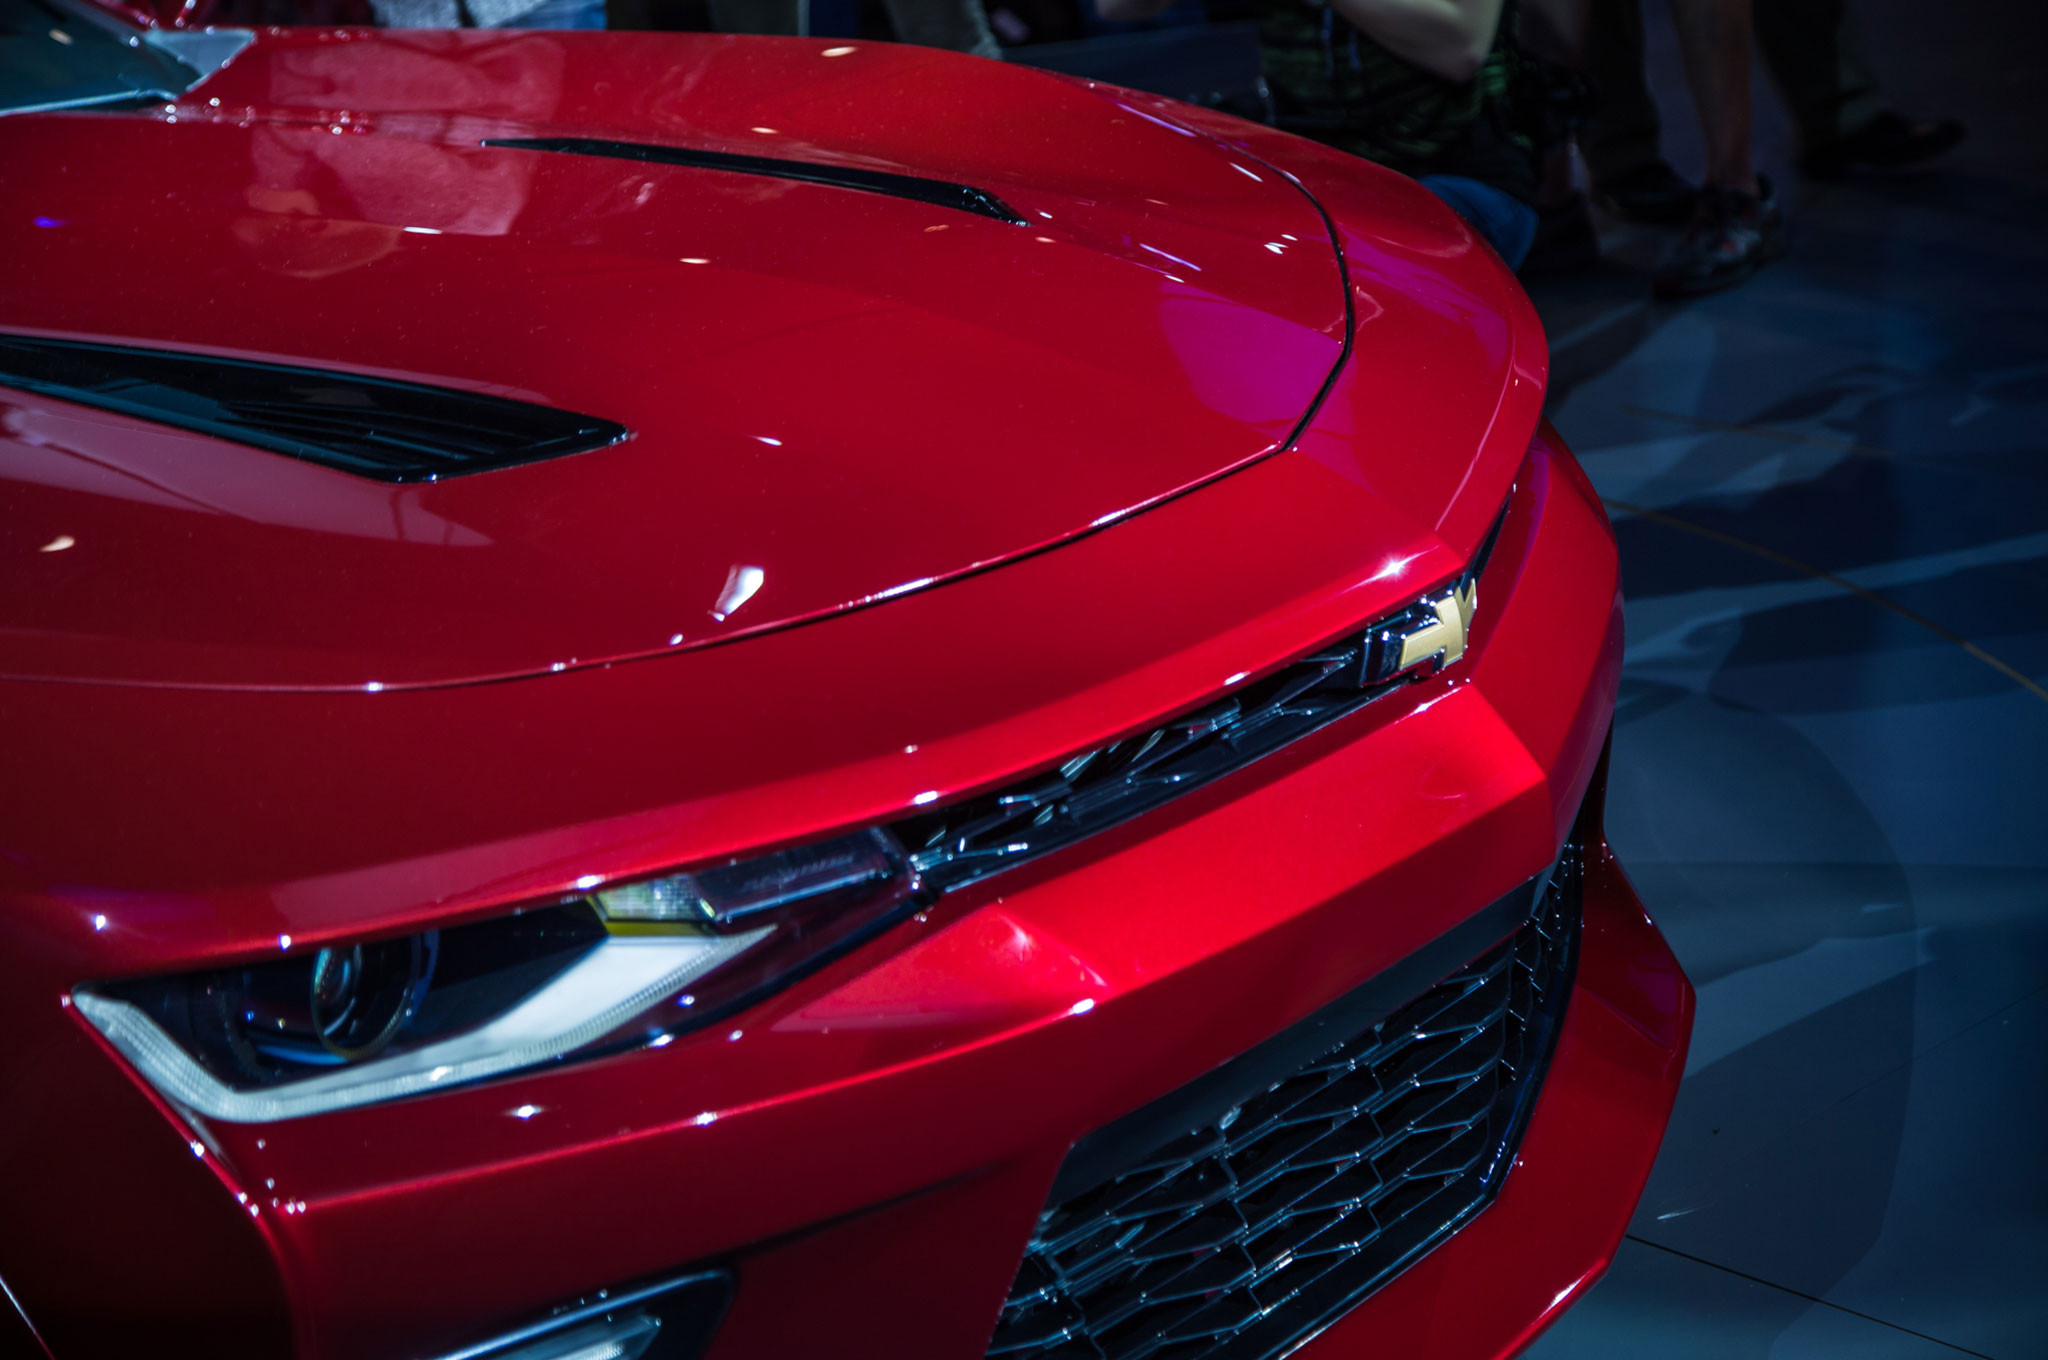 2016 chevrolet camaro 2l turbo first drive review. Black Bedroom Furniture Sets. Home Design Ideas